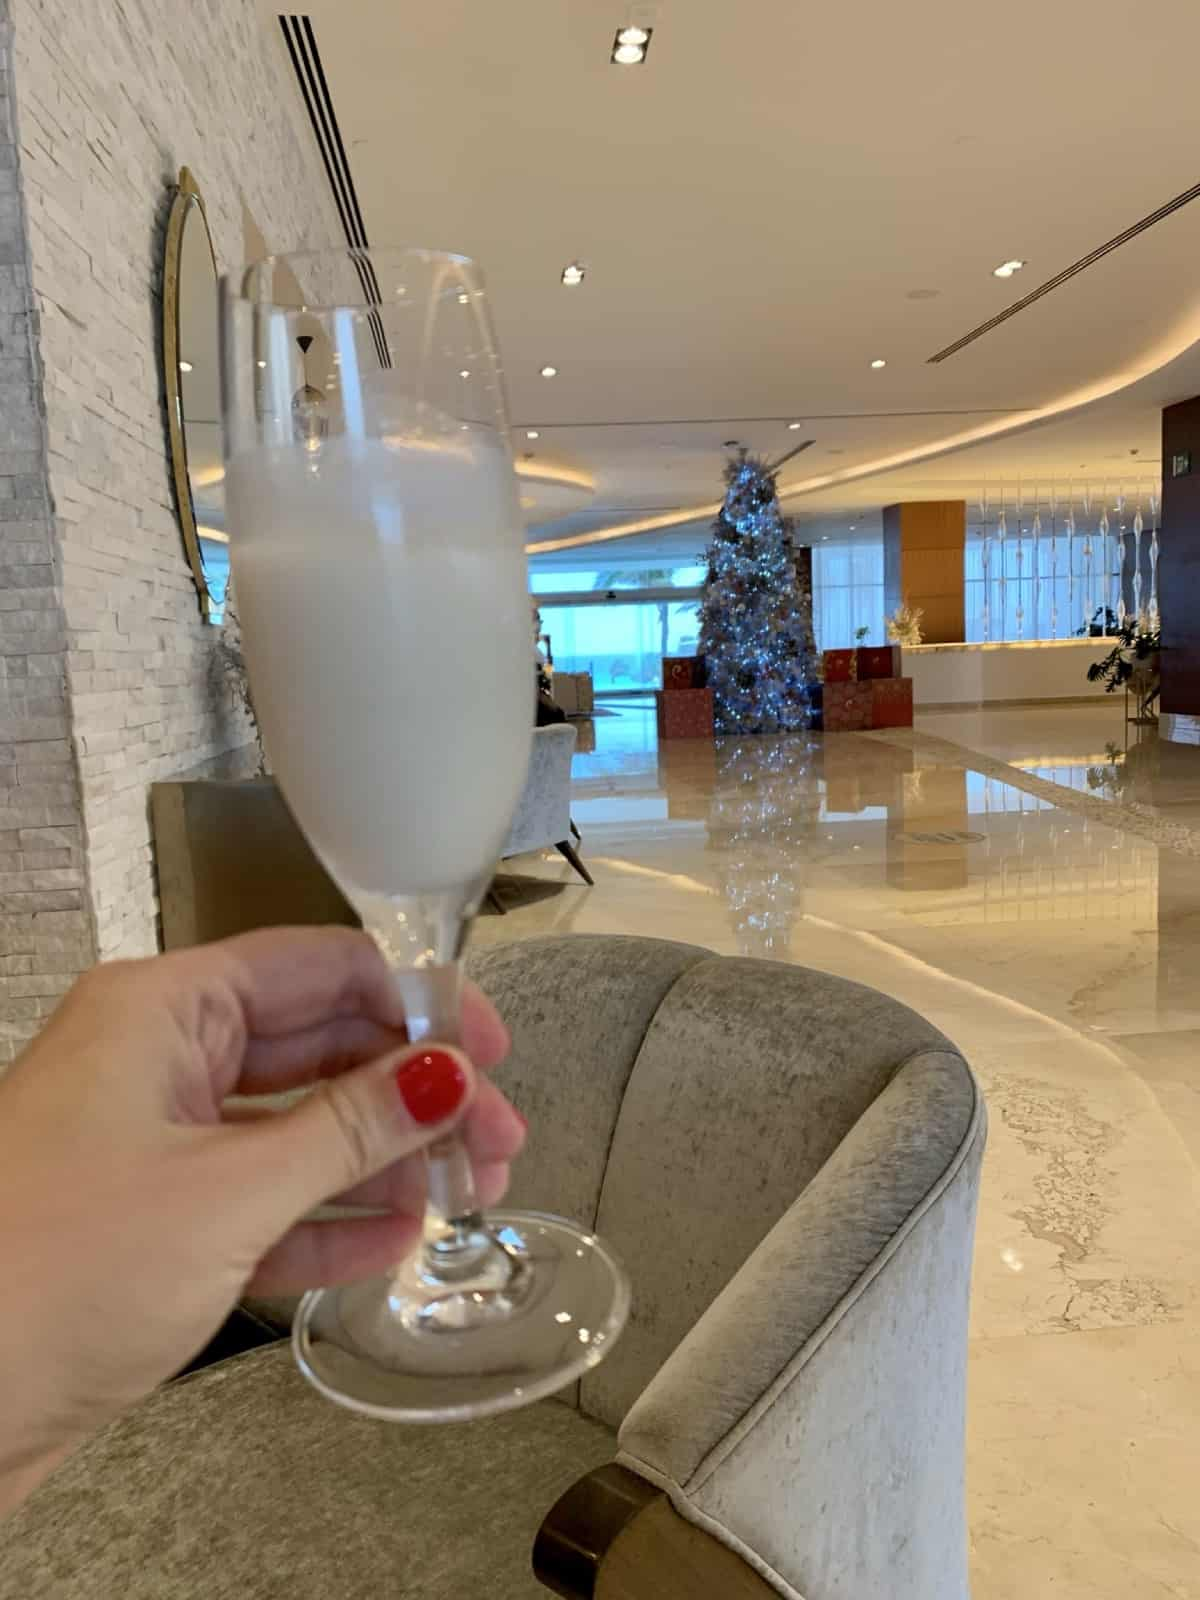 Detailed review of LeBlanc Cancun vs. Excellence Playa Mujeres - a lovely welcome at LeBlanc